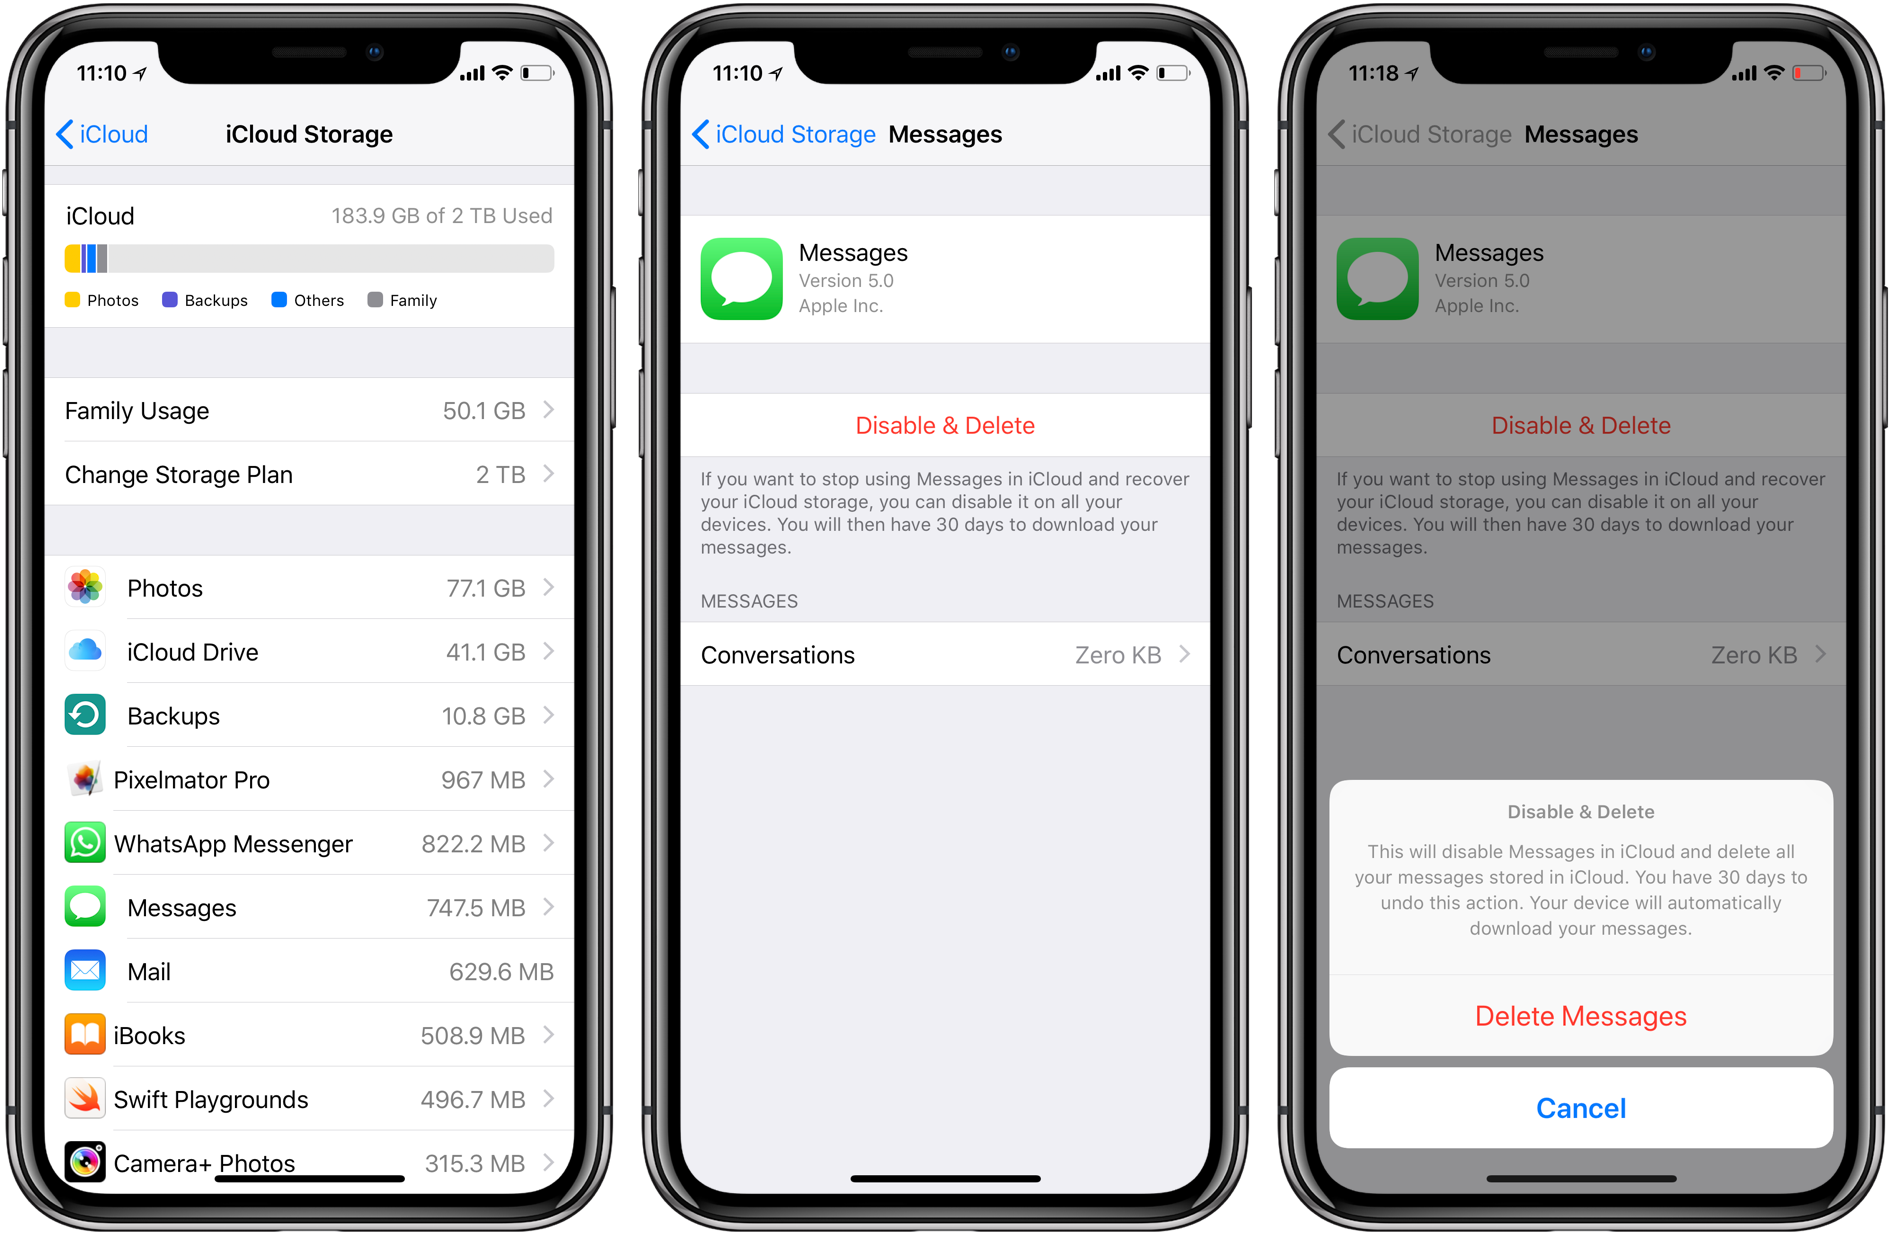 How to use Messages in iCloud